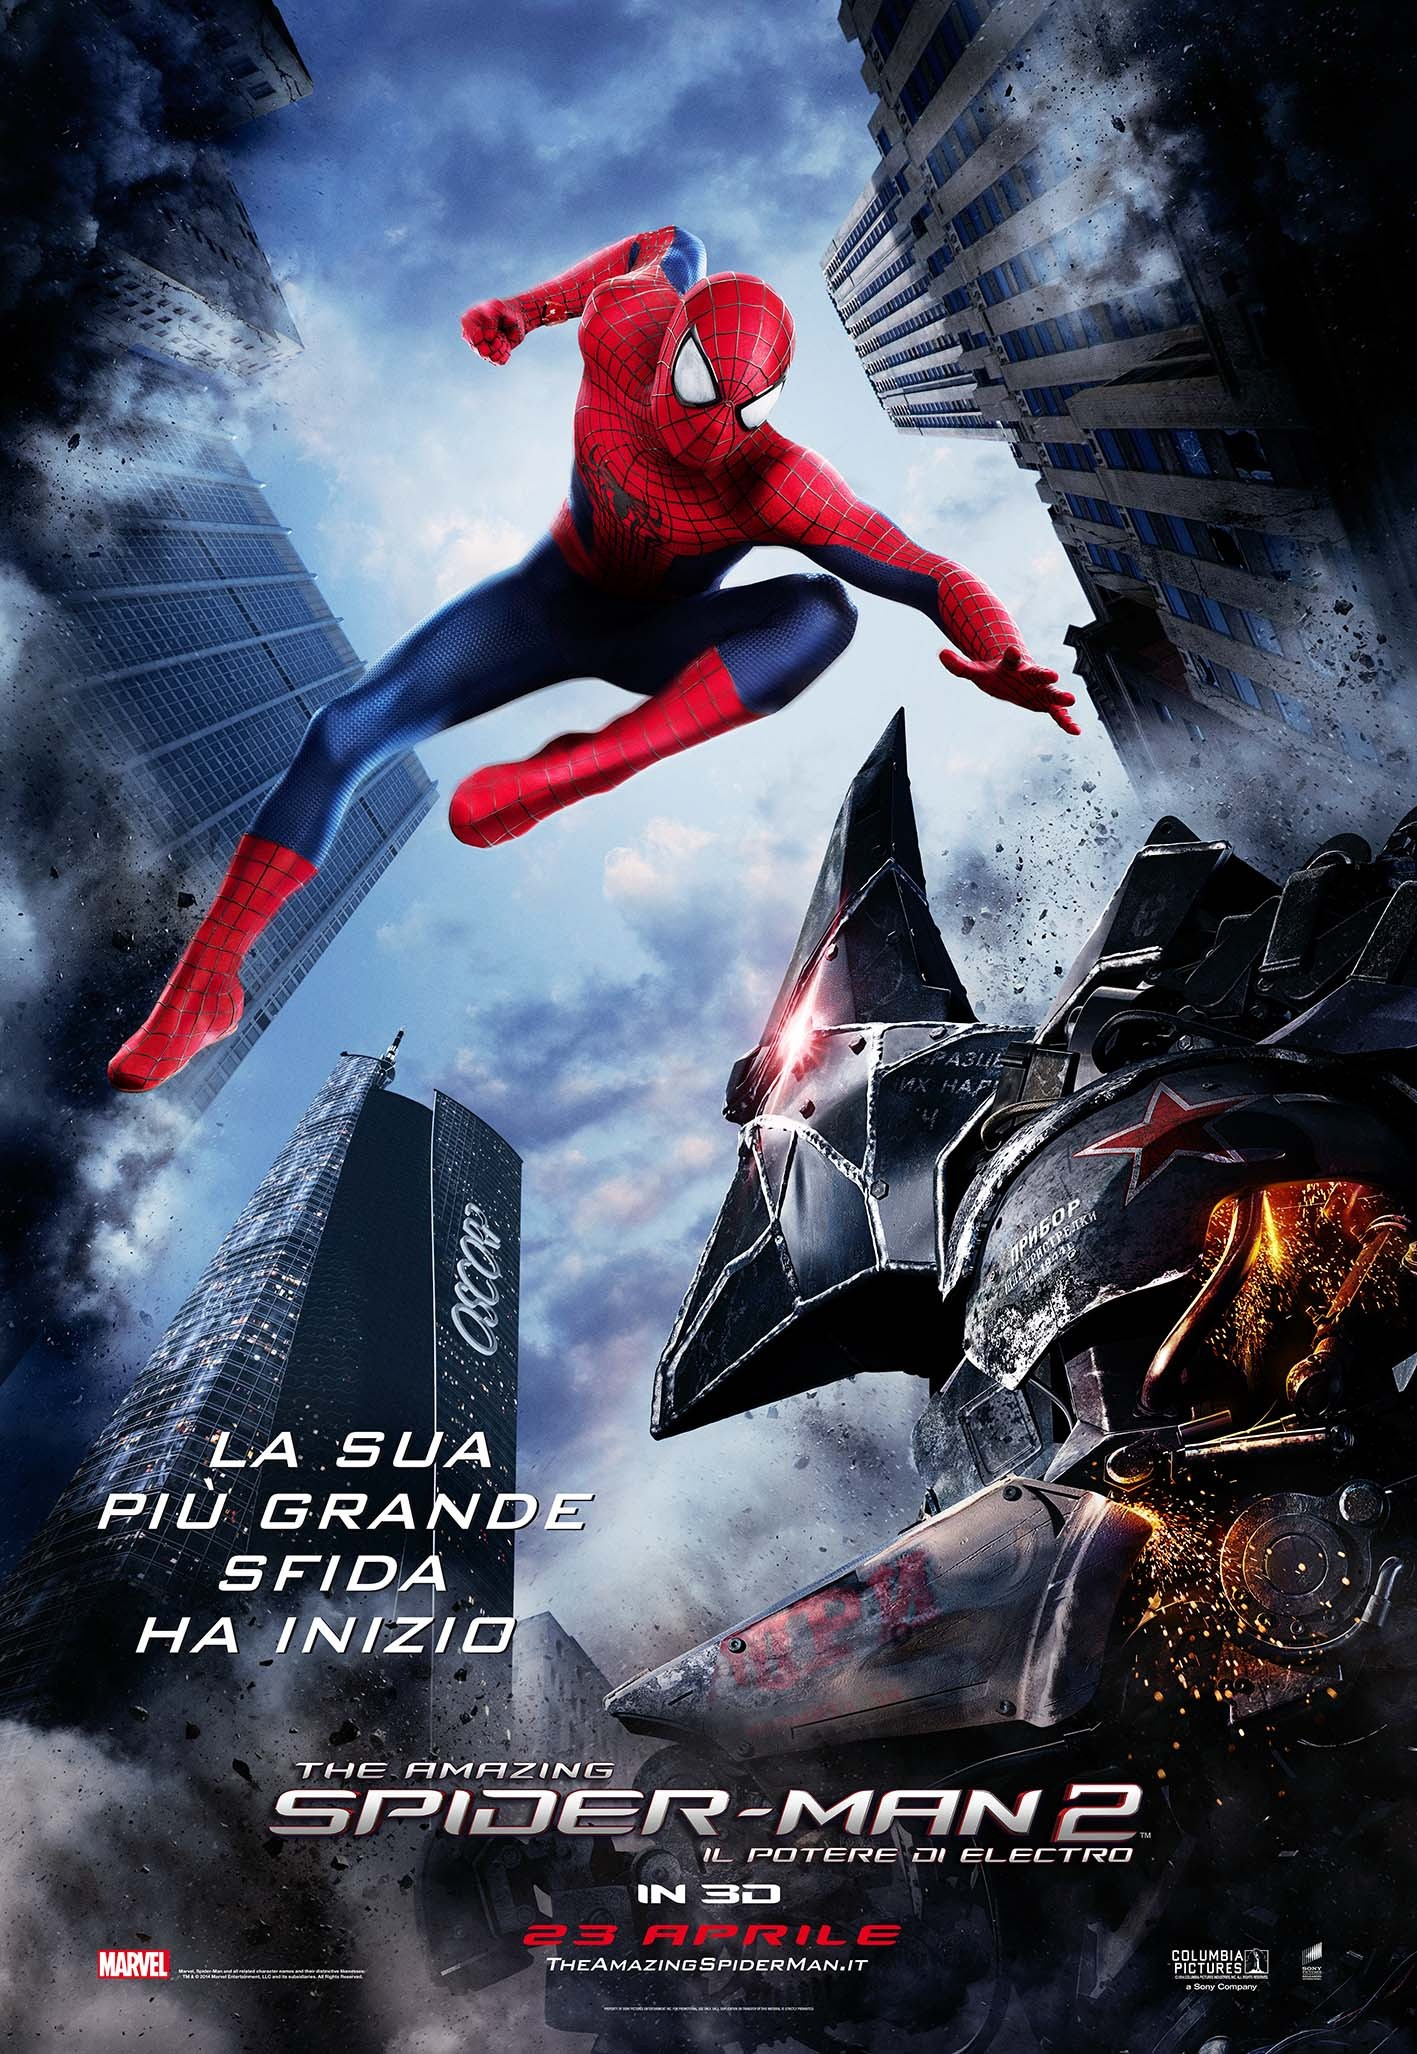 The Amazing Spider-Man 2-Official Poster Banner PROMO INTERNATIONAL-11ABRIL2014-02